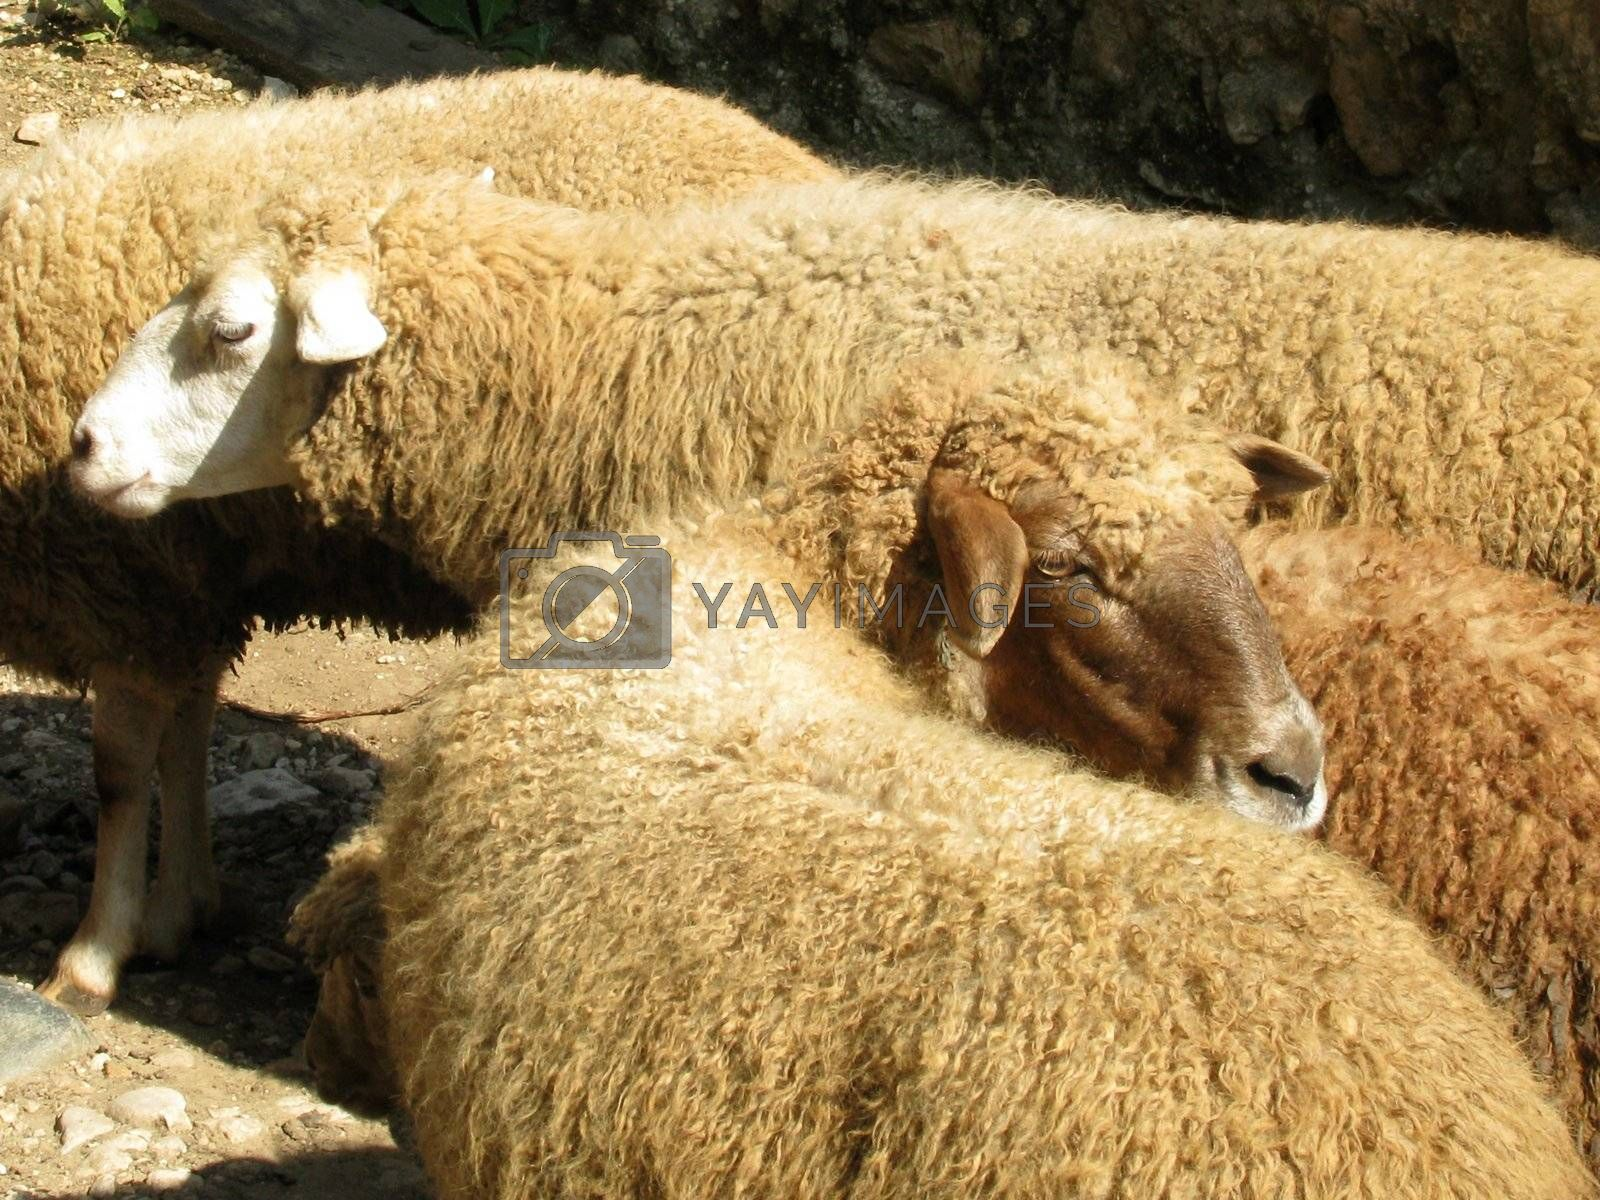 Sheep, herd, a flock, a pet, agriculture, animal industries, village, village